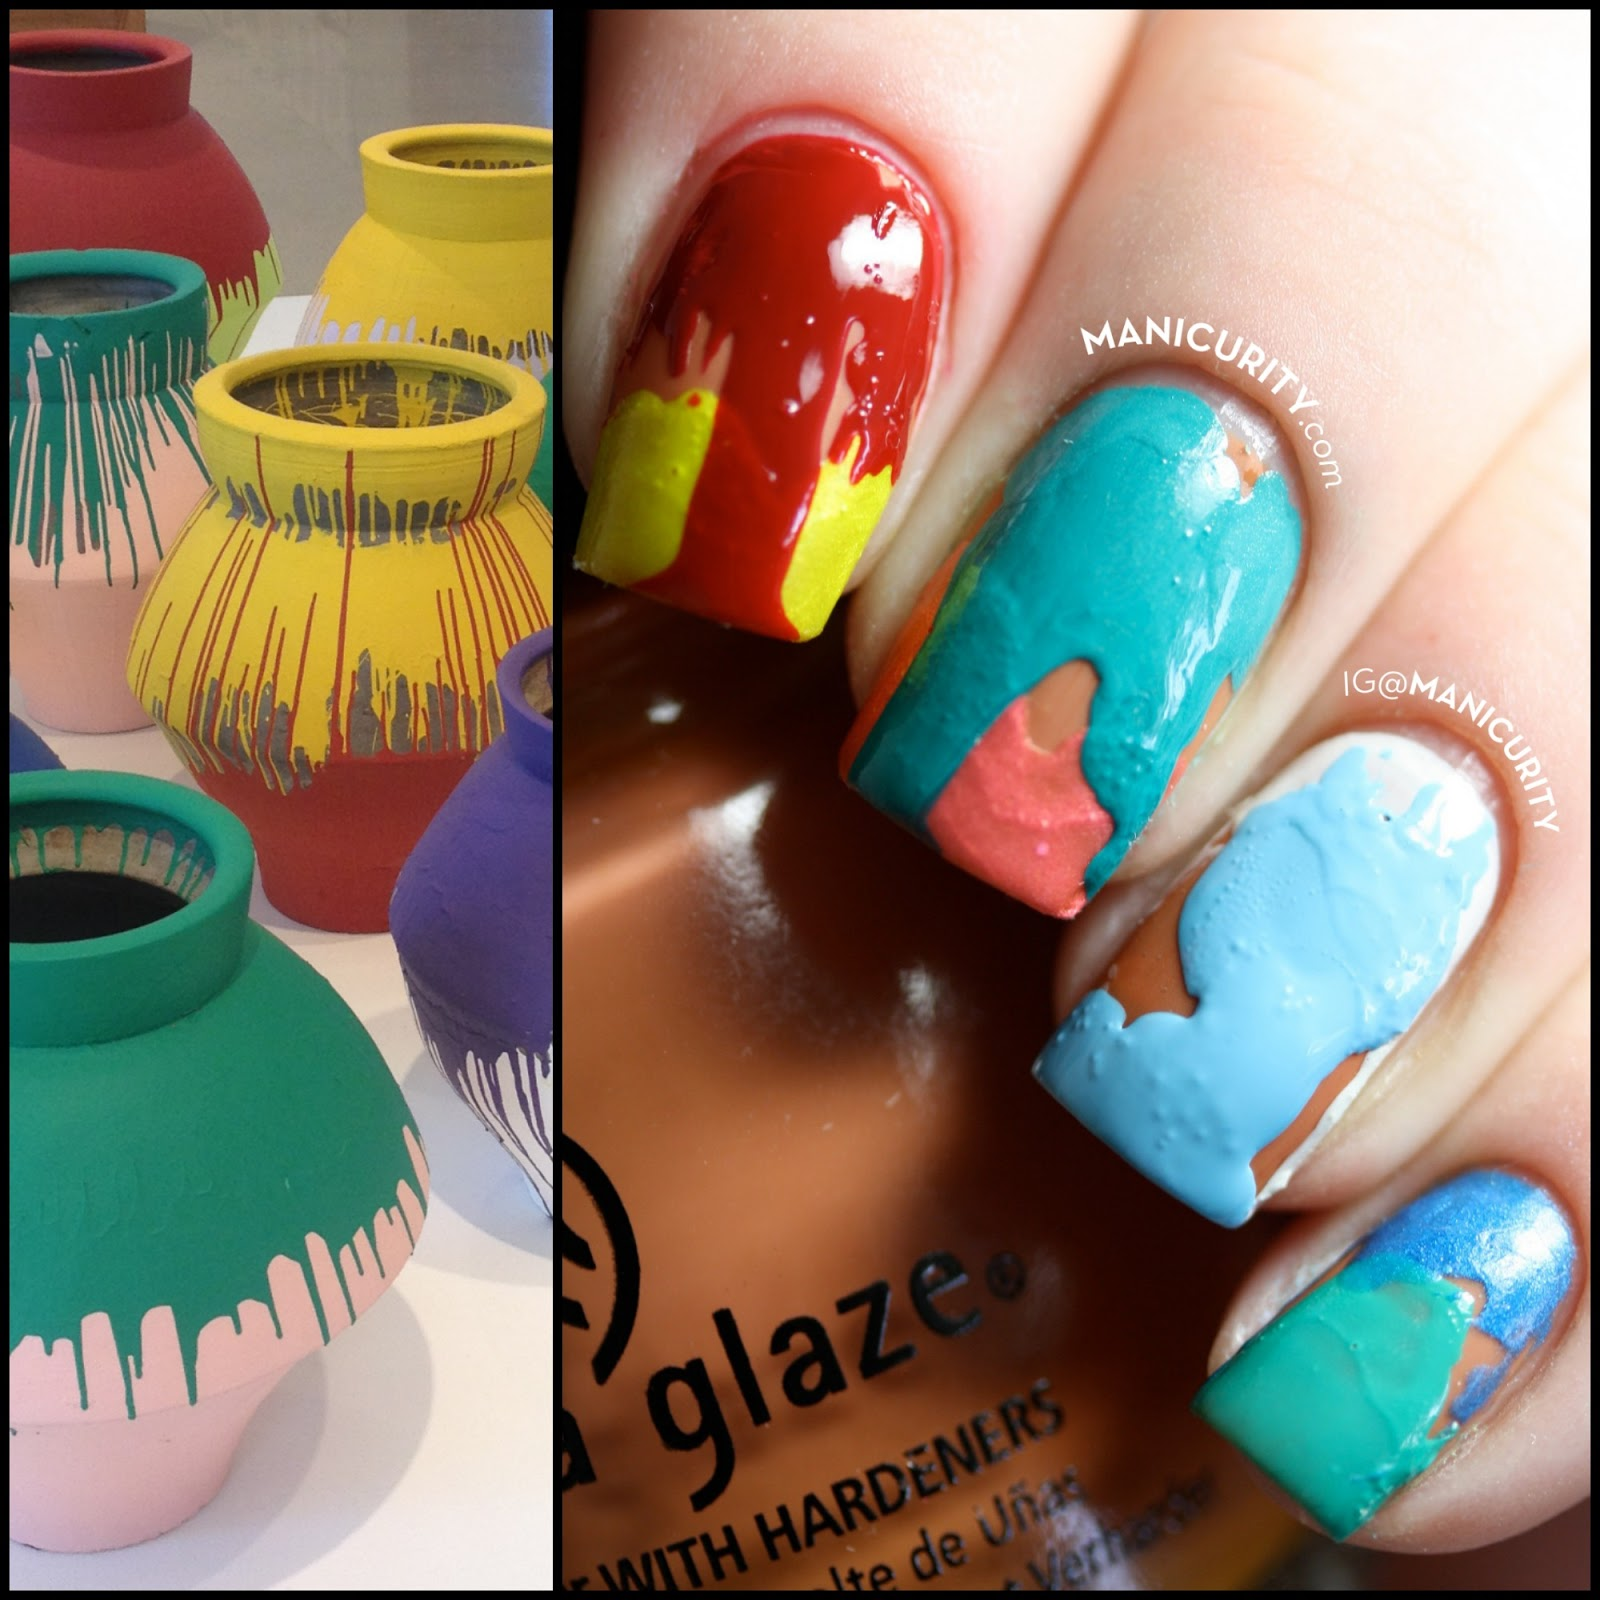 Manicurity | Ai Weiwei Colored Vases inspired Double Drip Nails - messy, drippy, art-inspired nail art